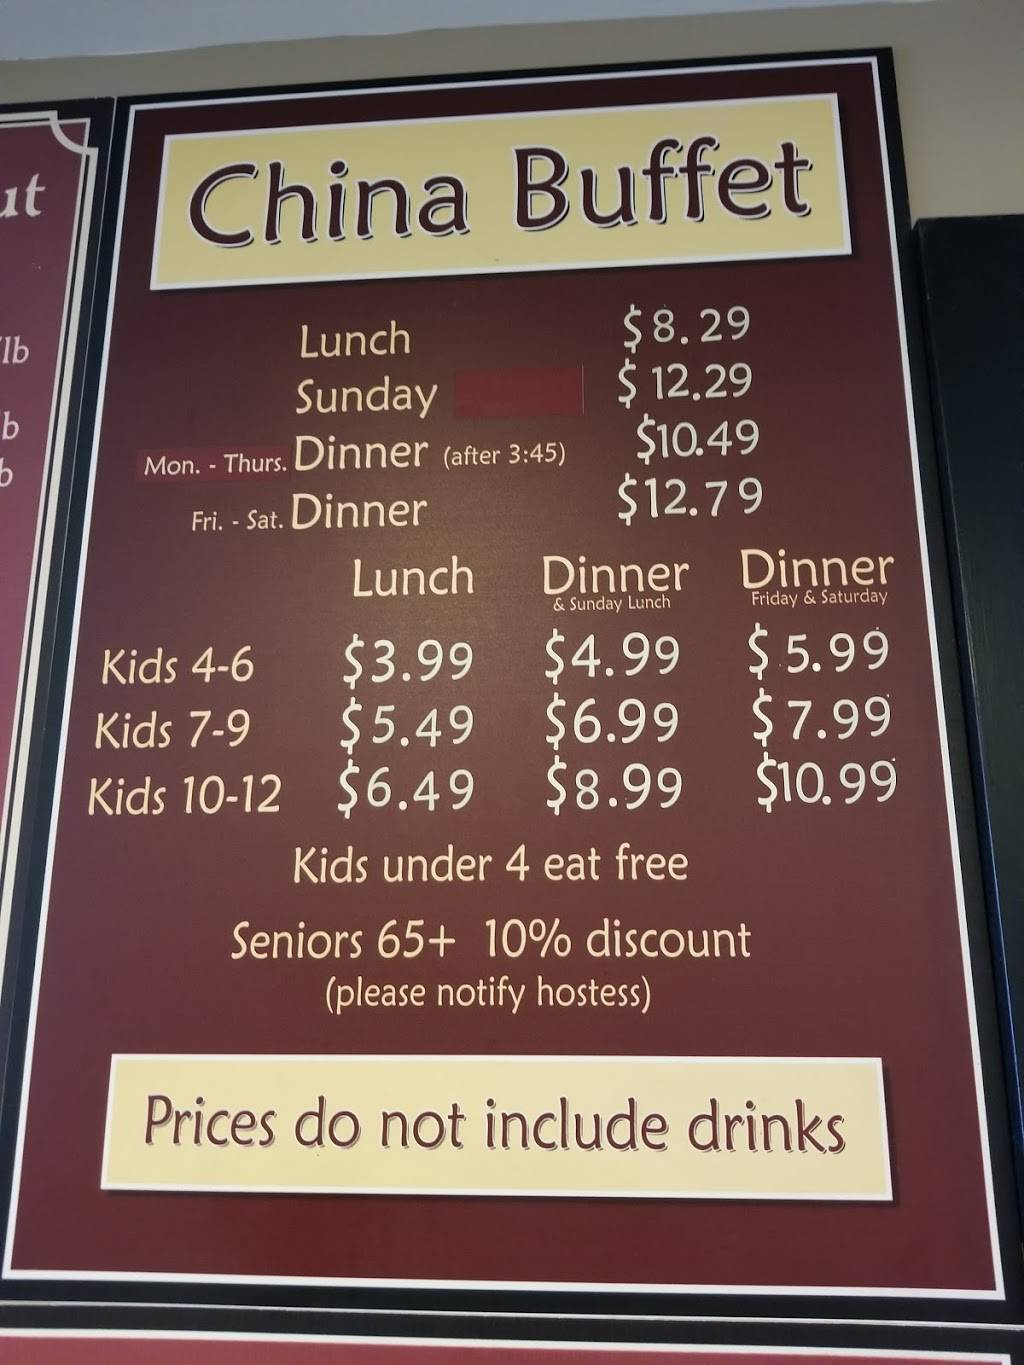 China Buffet & Mongolian Grille | restaurant | 120 N 66th St, Lincoln, NE 68505, USA | 4024700265 OR +1 402-470-0265